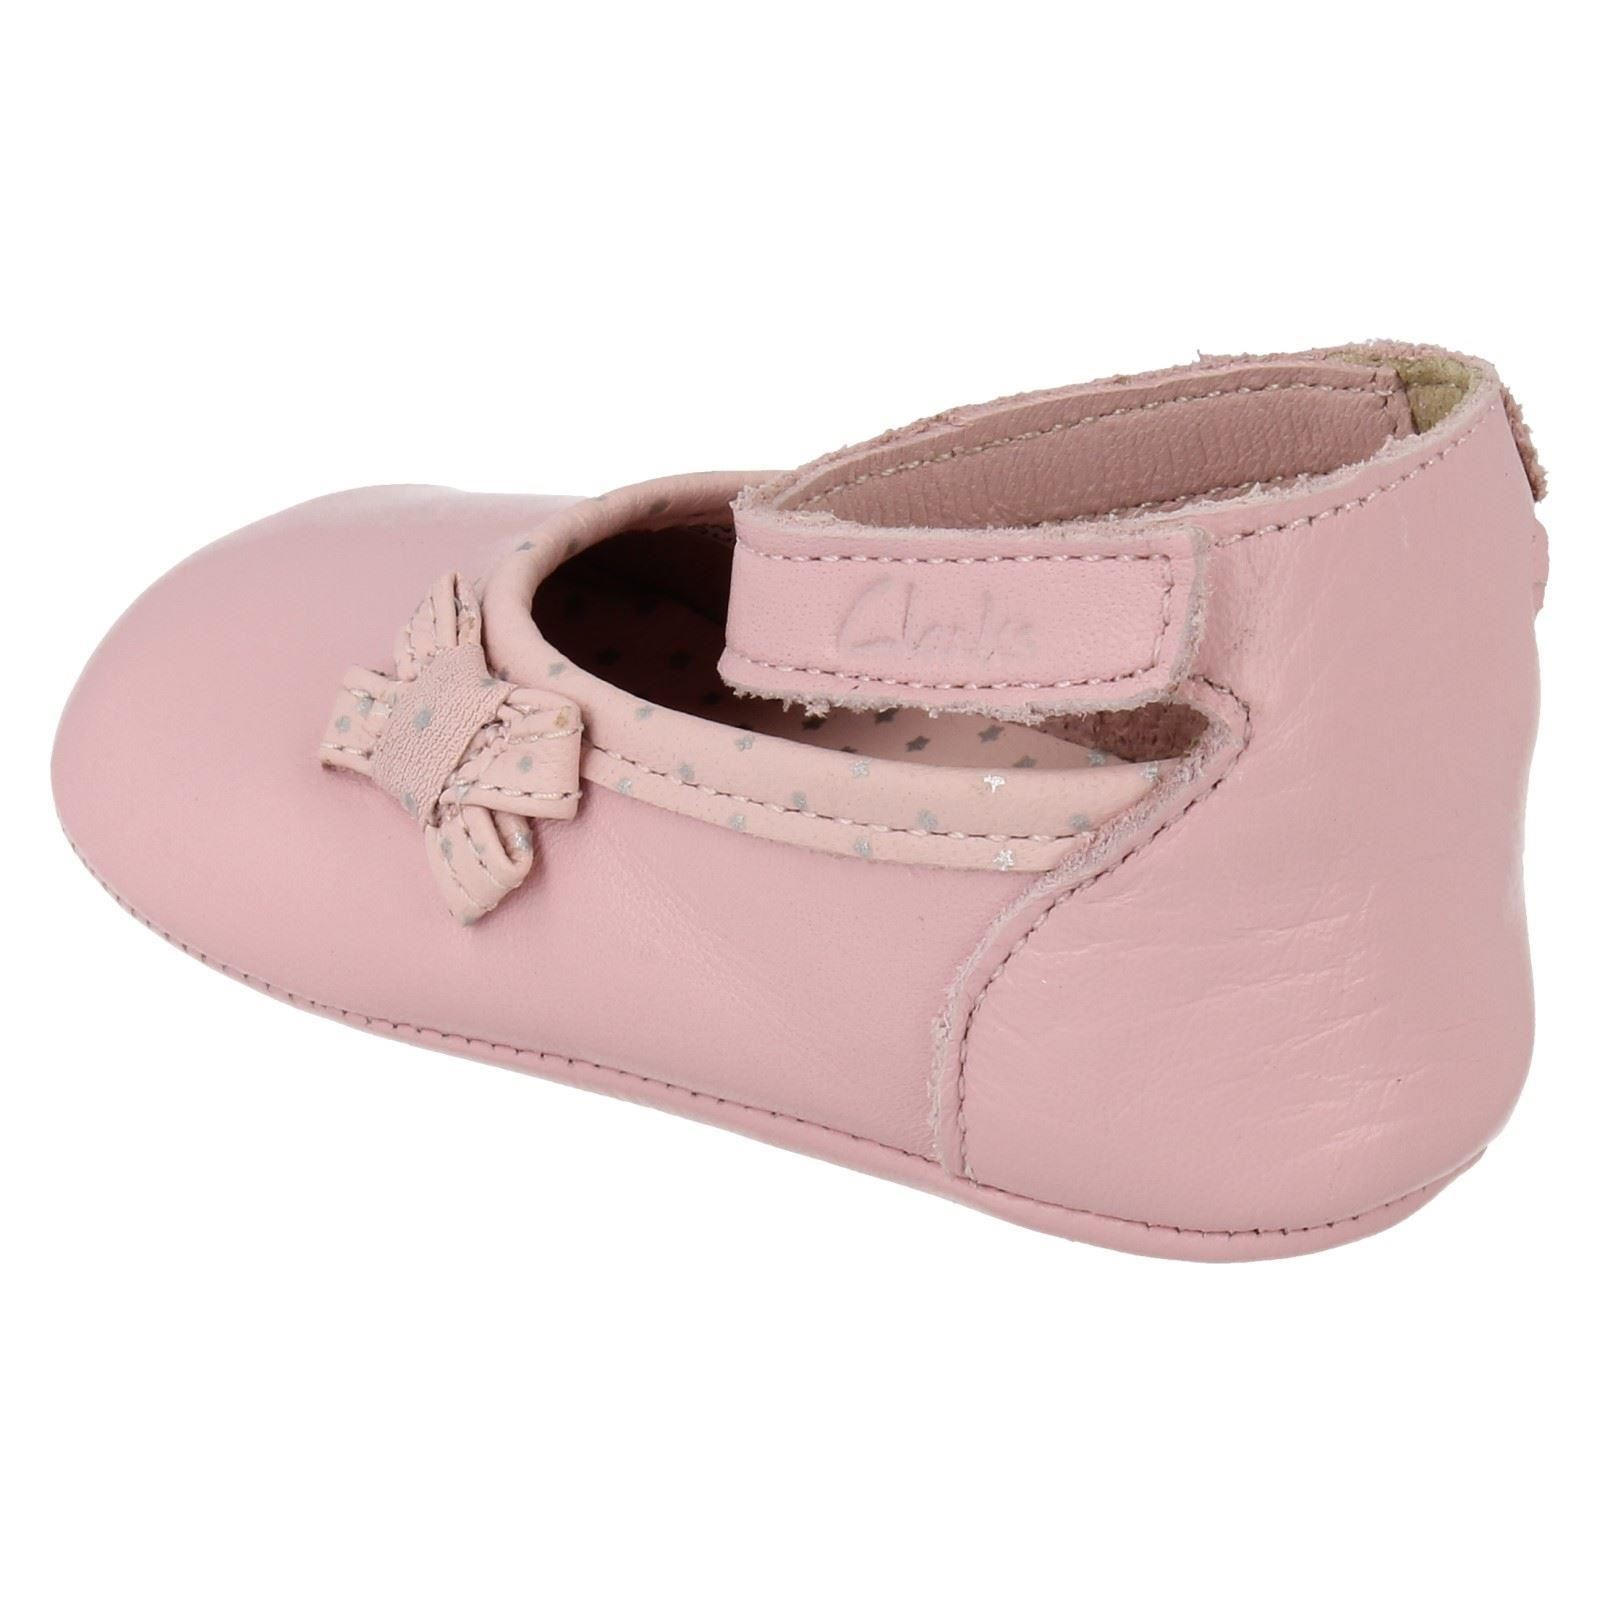 Girls Clarks Baby Cruiser Shoes BabyHarper